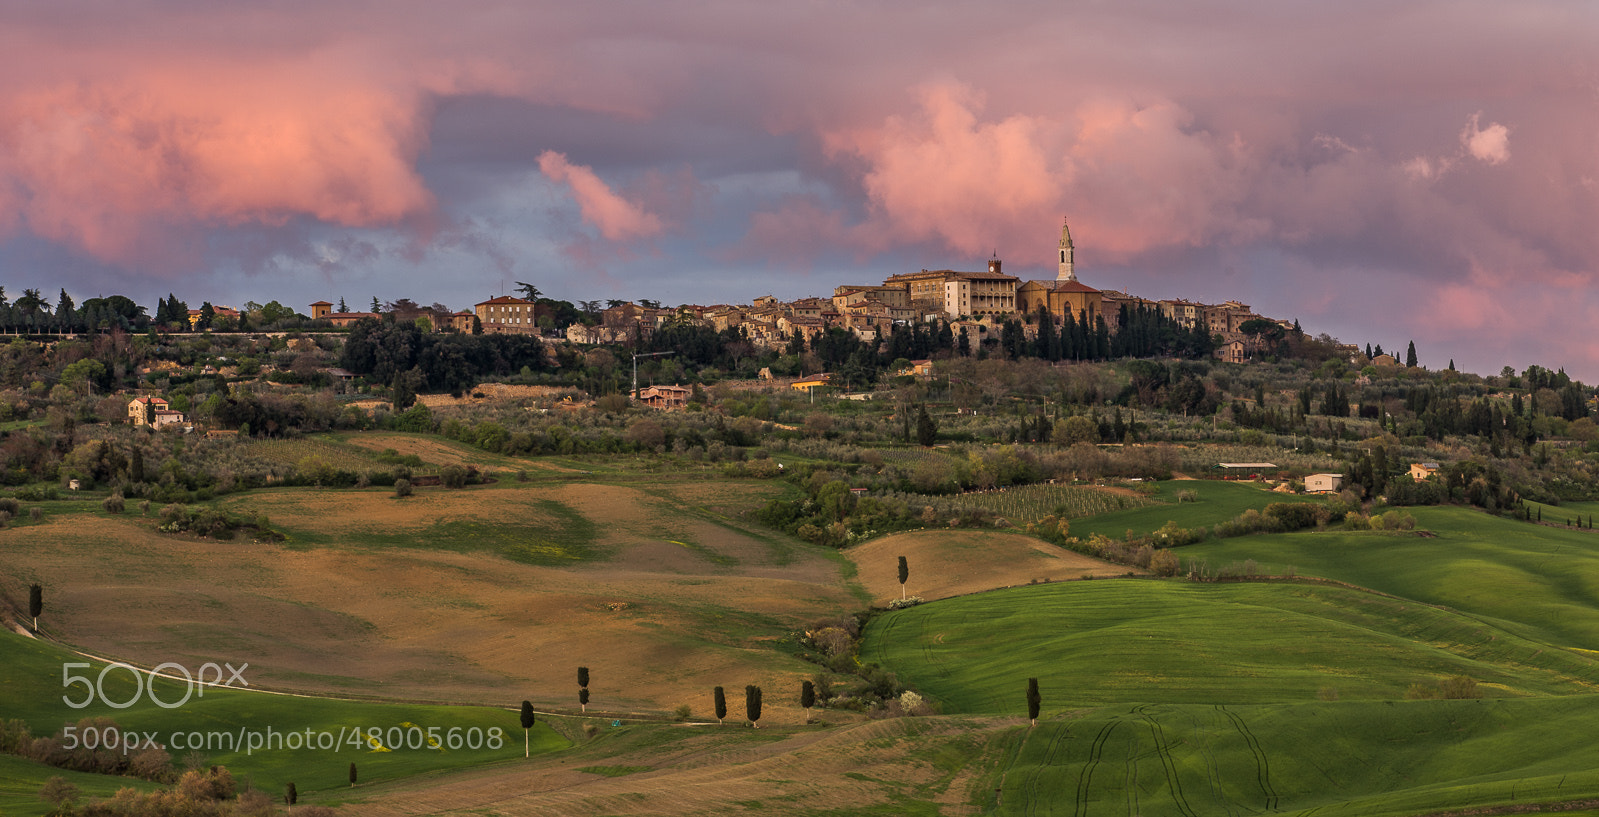 Photograph Pienza in setting sun light by Hans Kruse on 500px